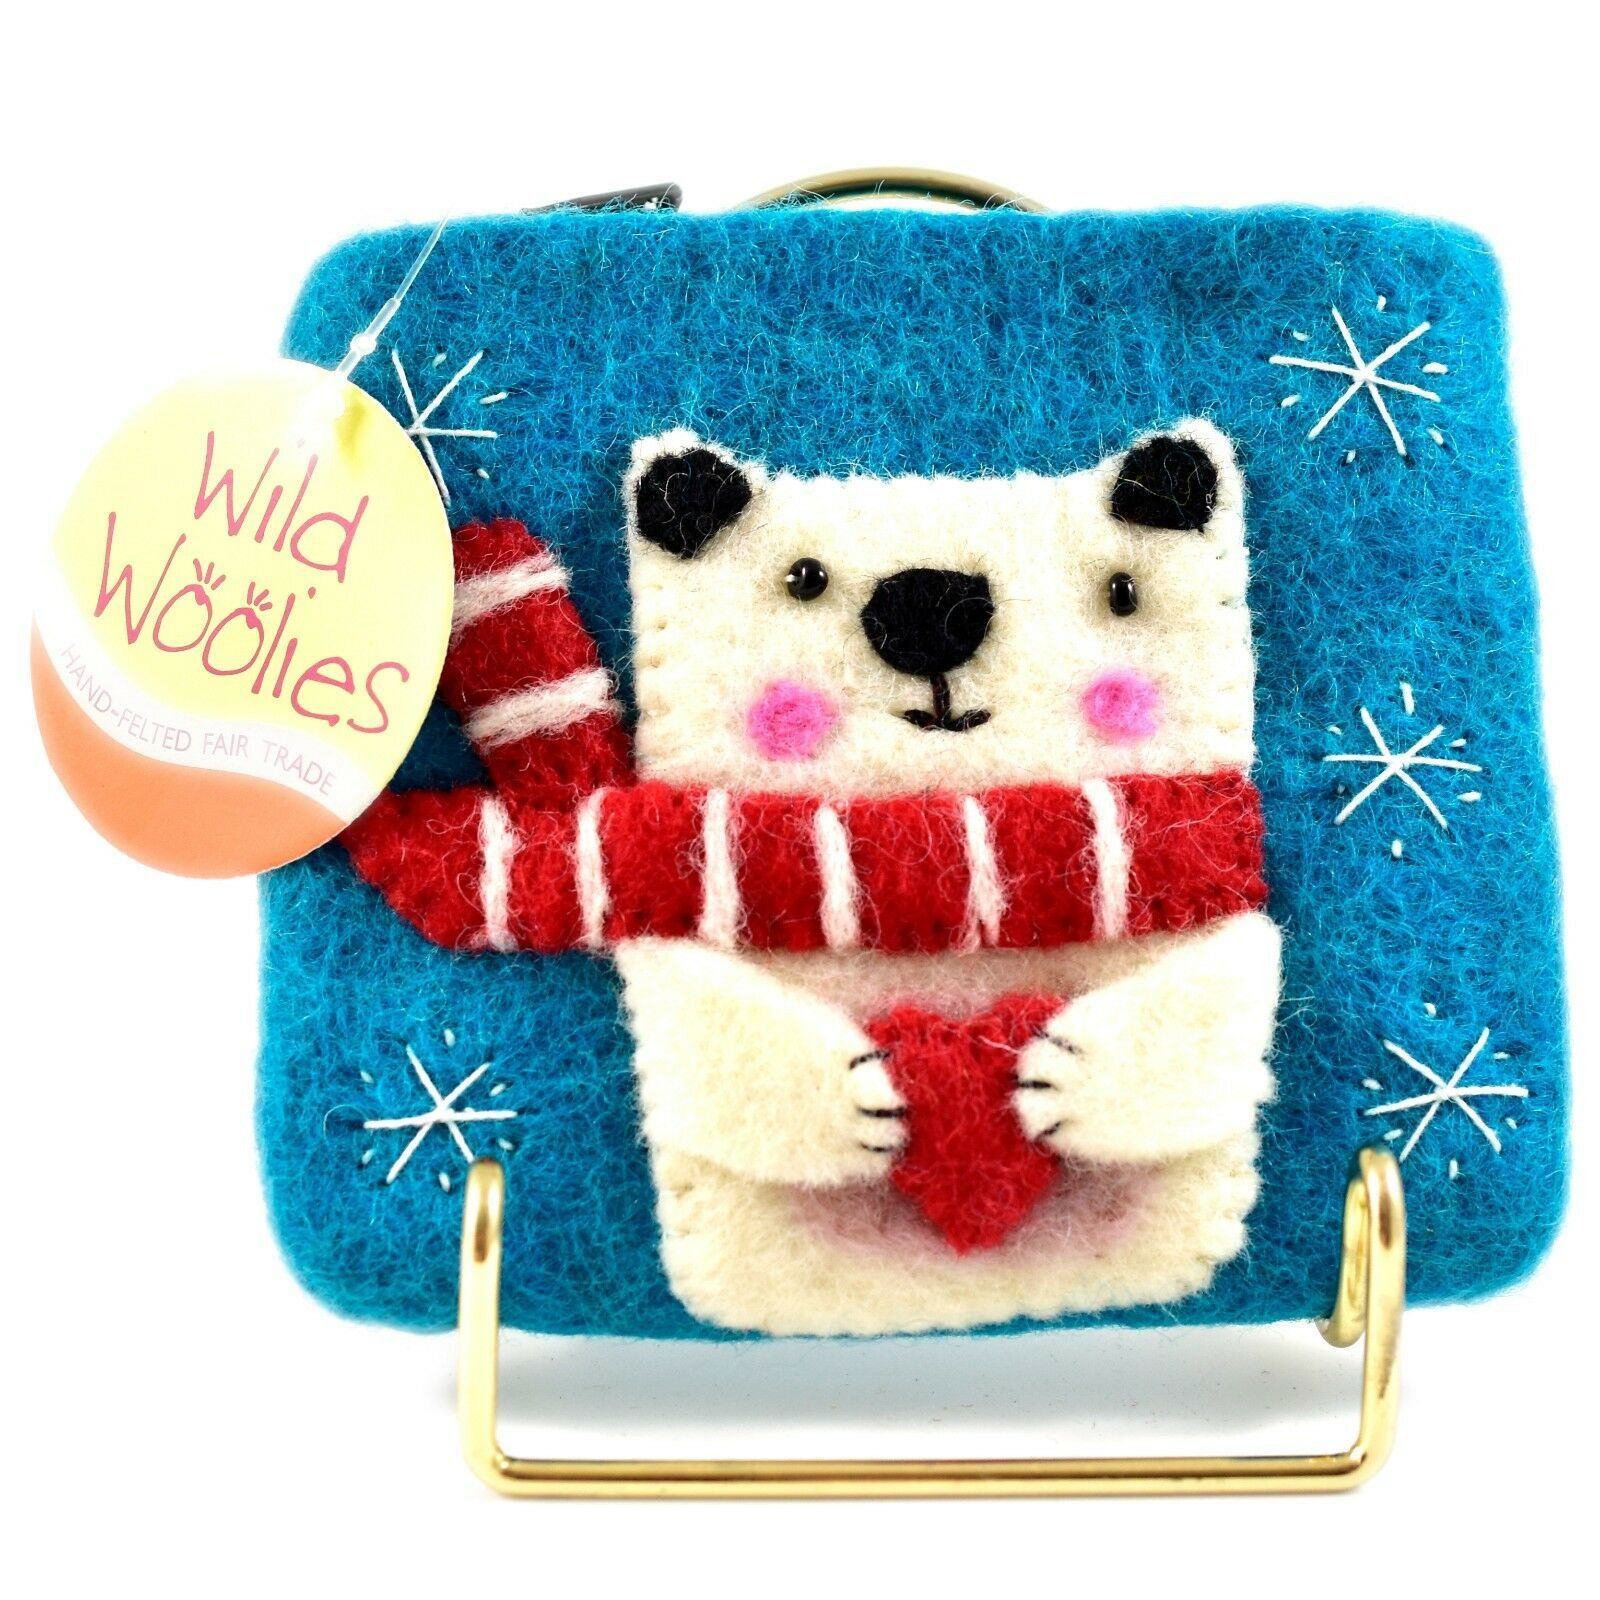 Wild Woolies Handmade Felted Wool Polar Bear Felt Coin Purse Bag Made in Nepal